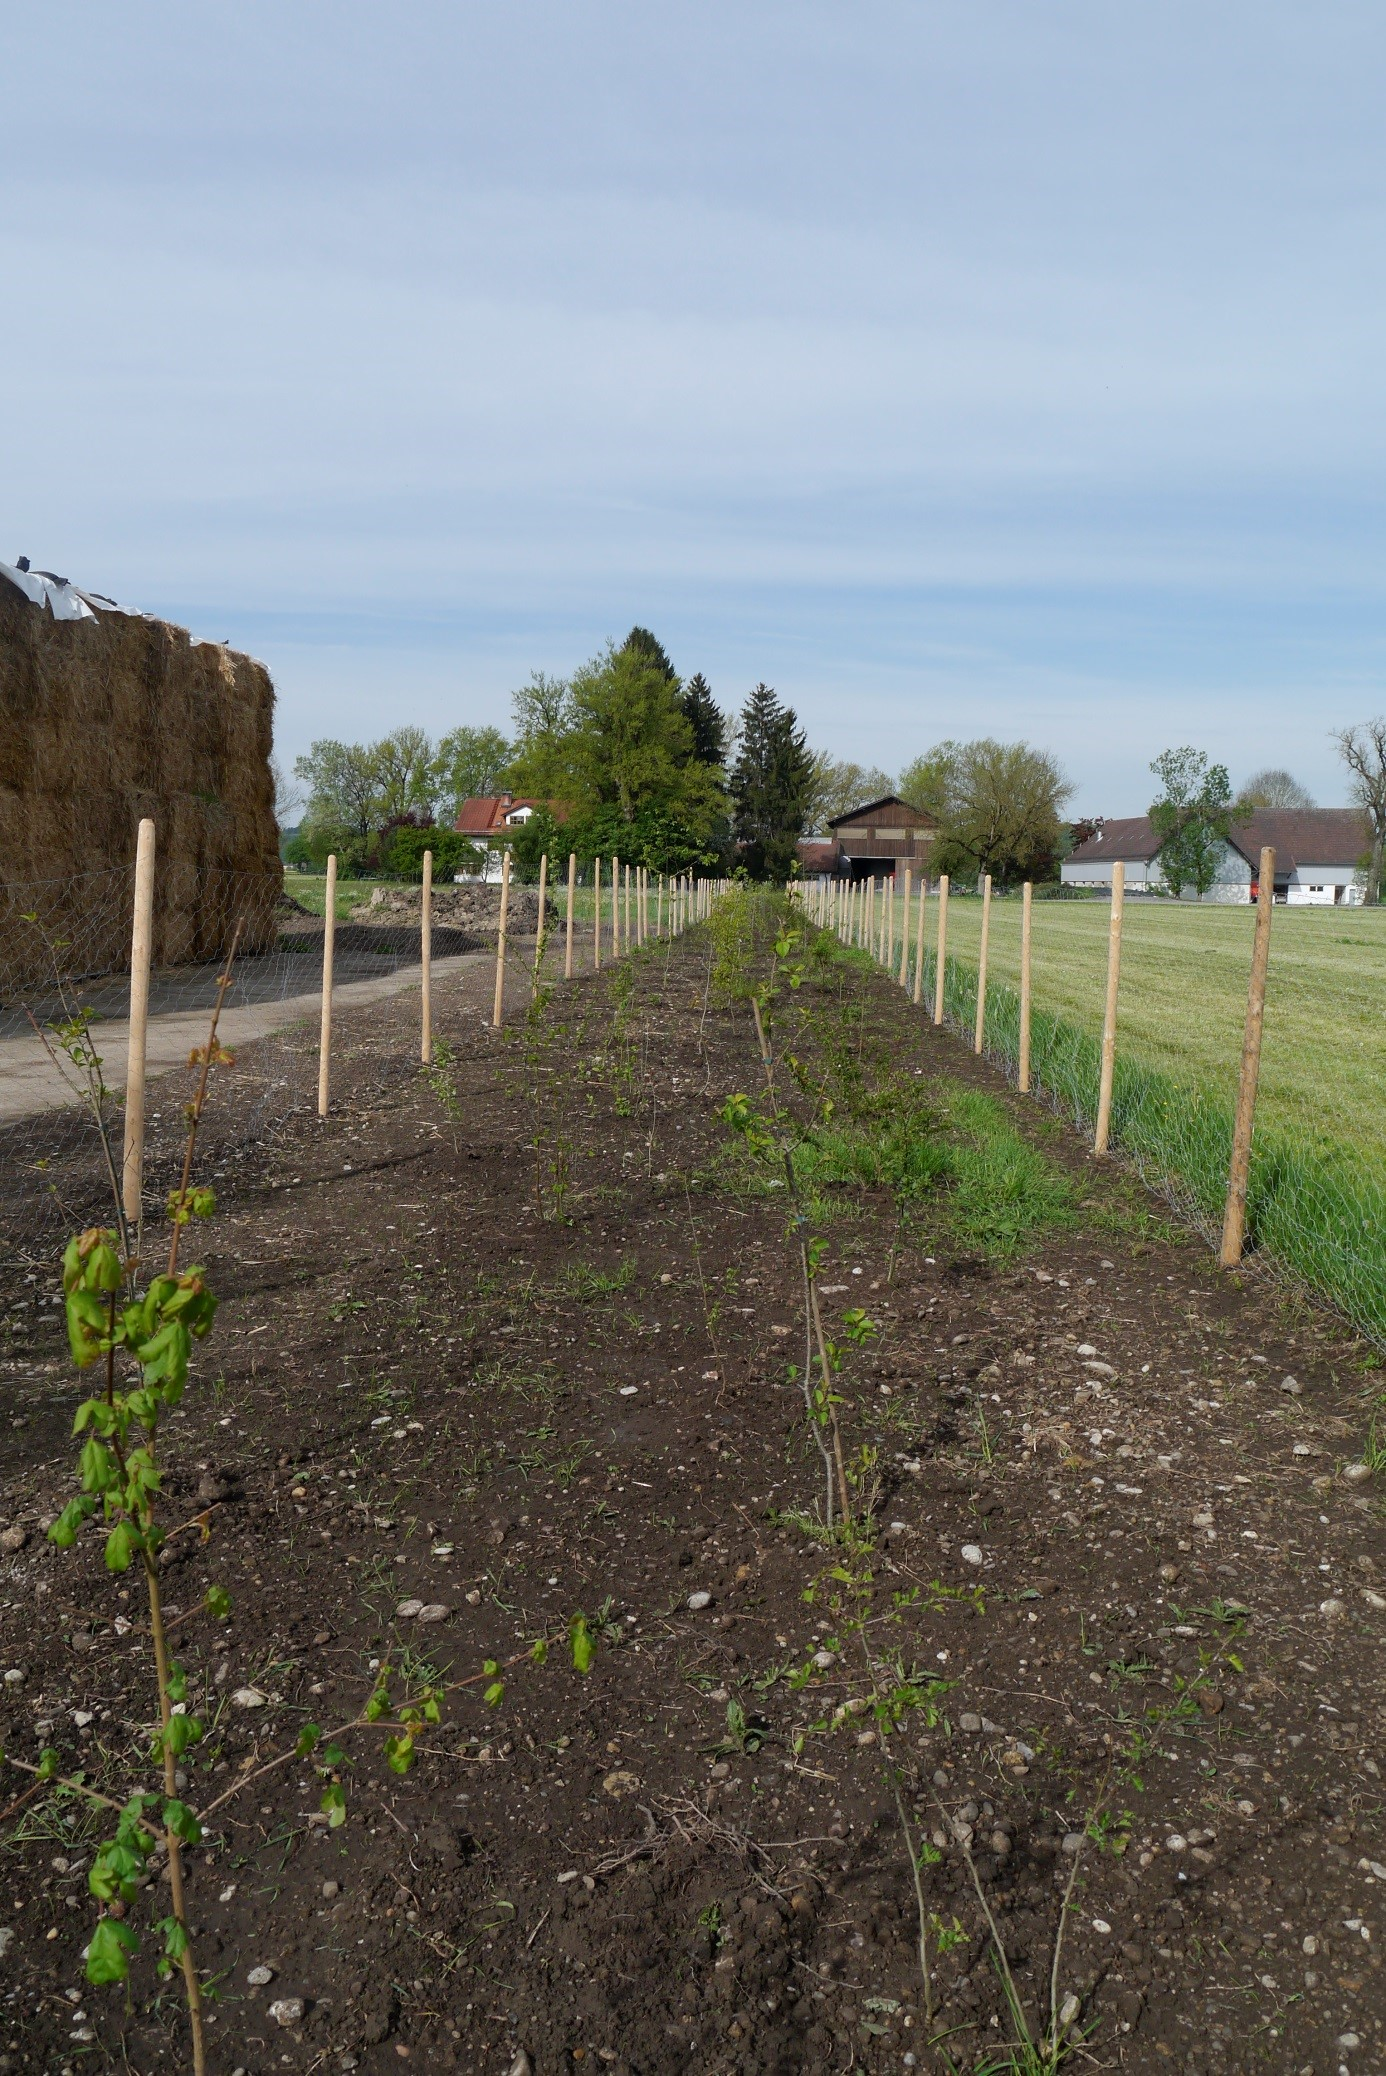 © Biolandhof Kreppold: newly planted tree strip on Bioland farm Kreppold